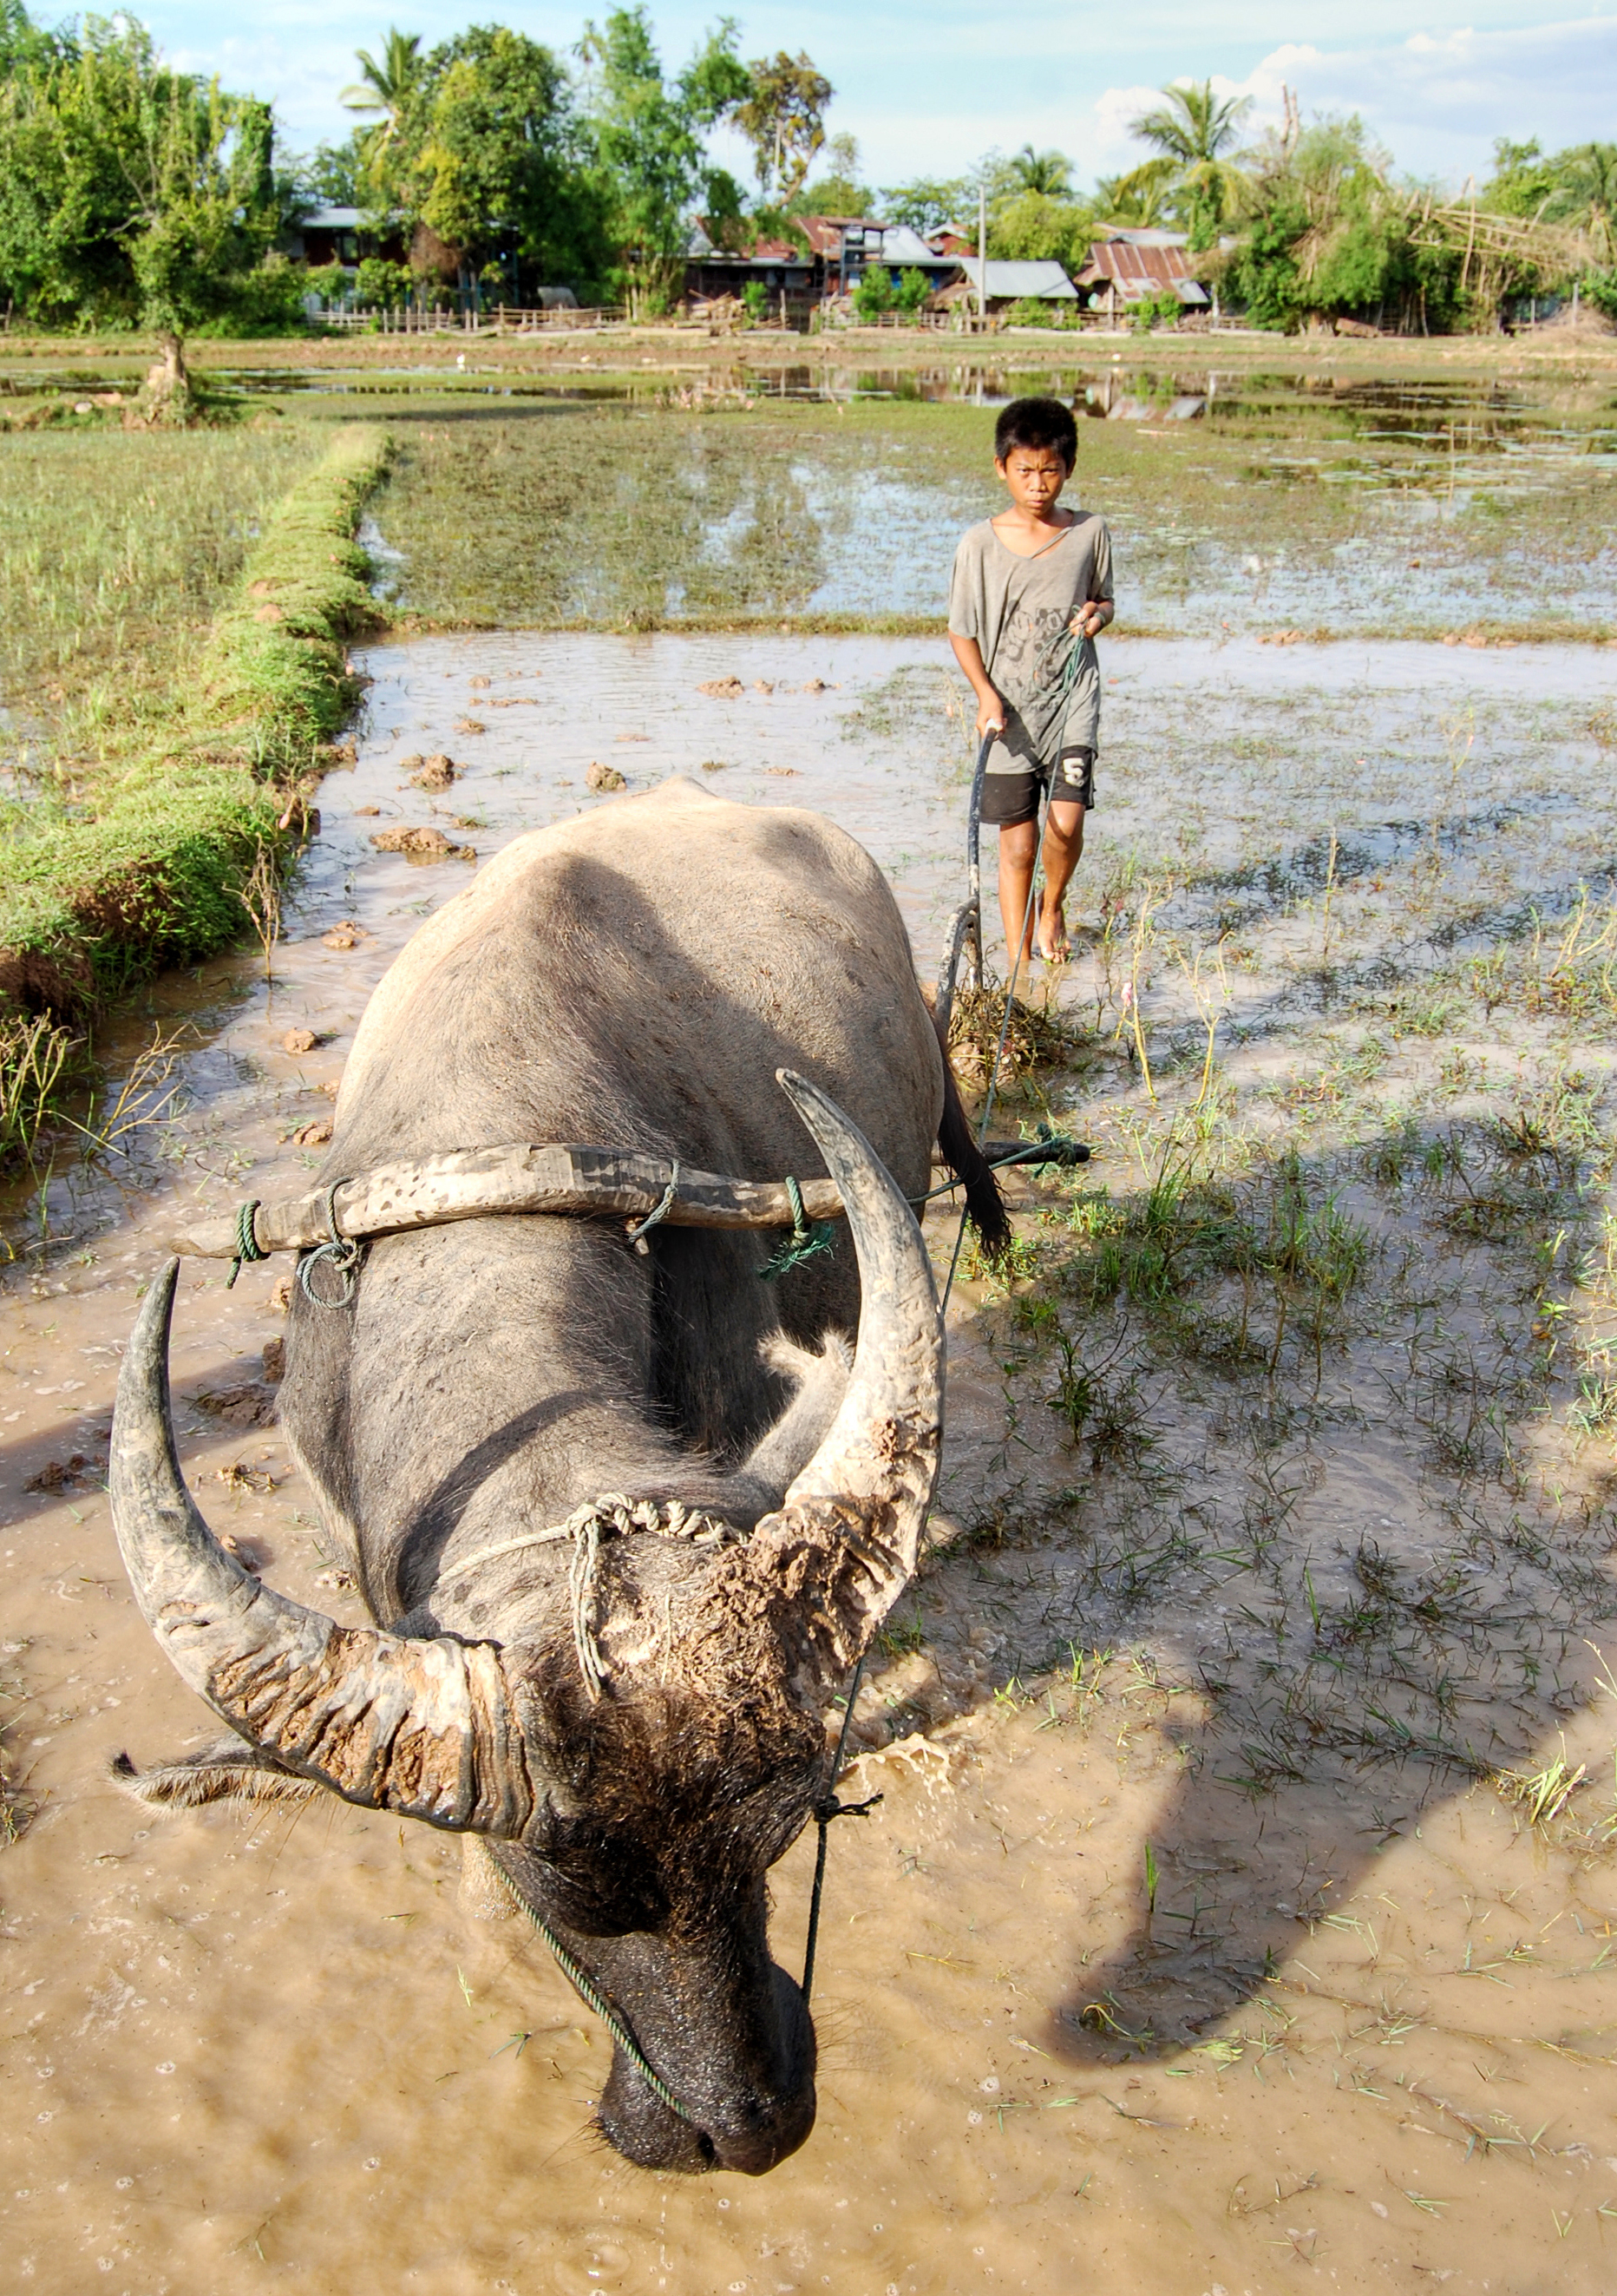 File:Child and ox ploughing, Laos (2).jpg - Wikimedia Commons